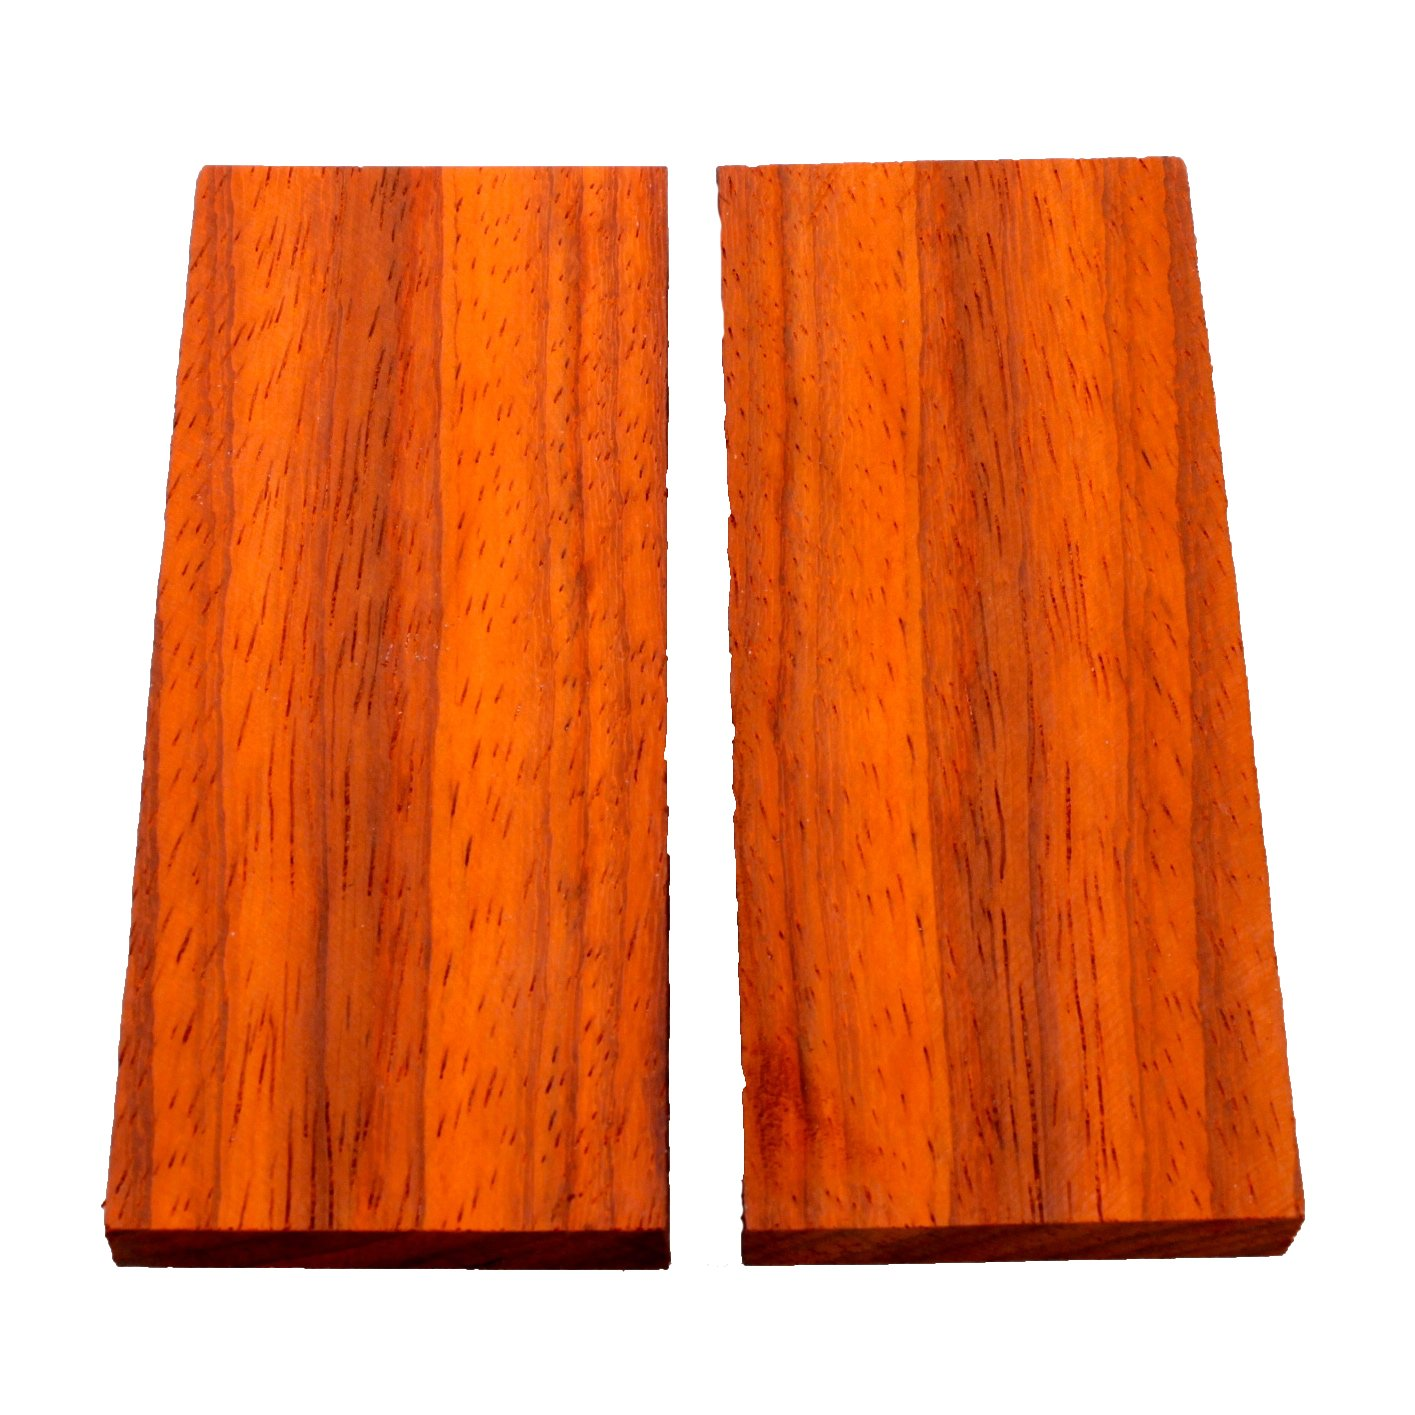 Padauk Knifes Scales, Bookmatched Handle blank